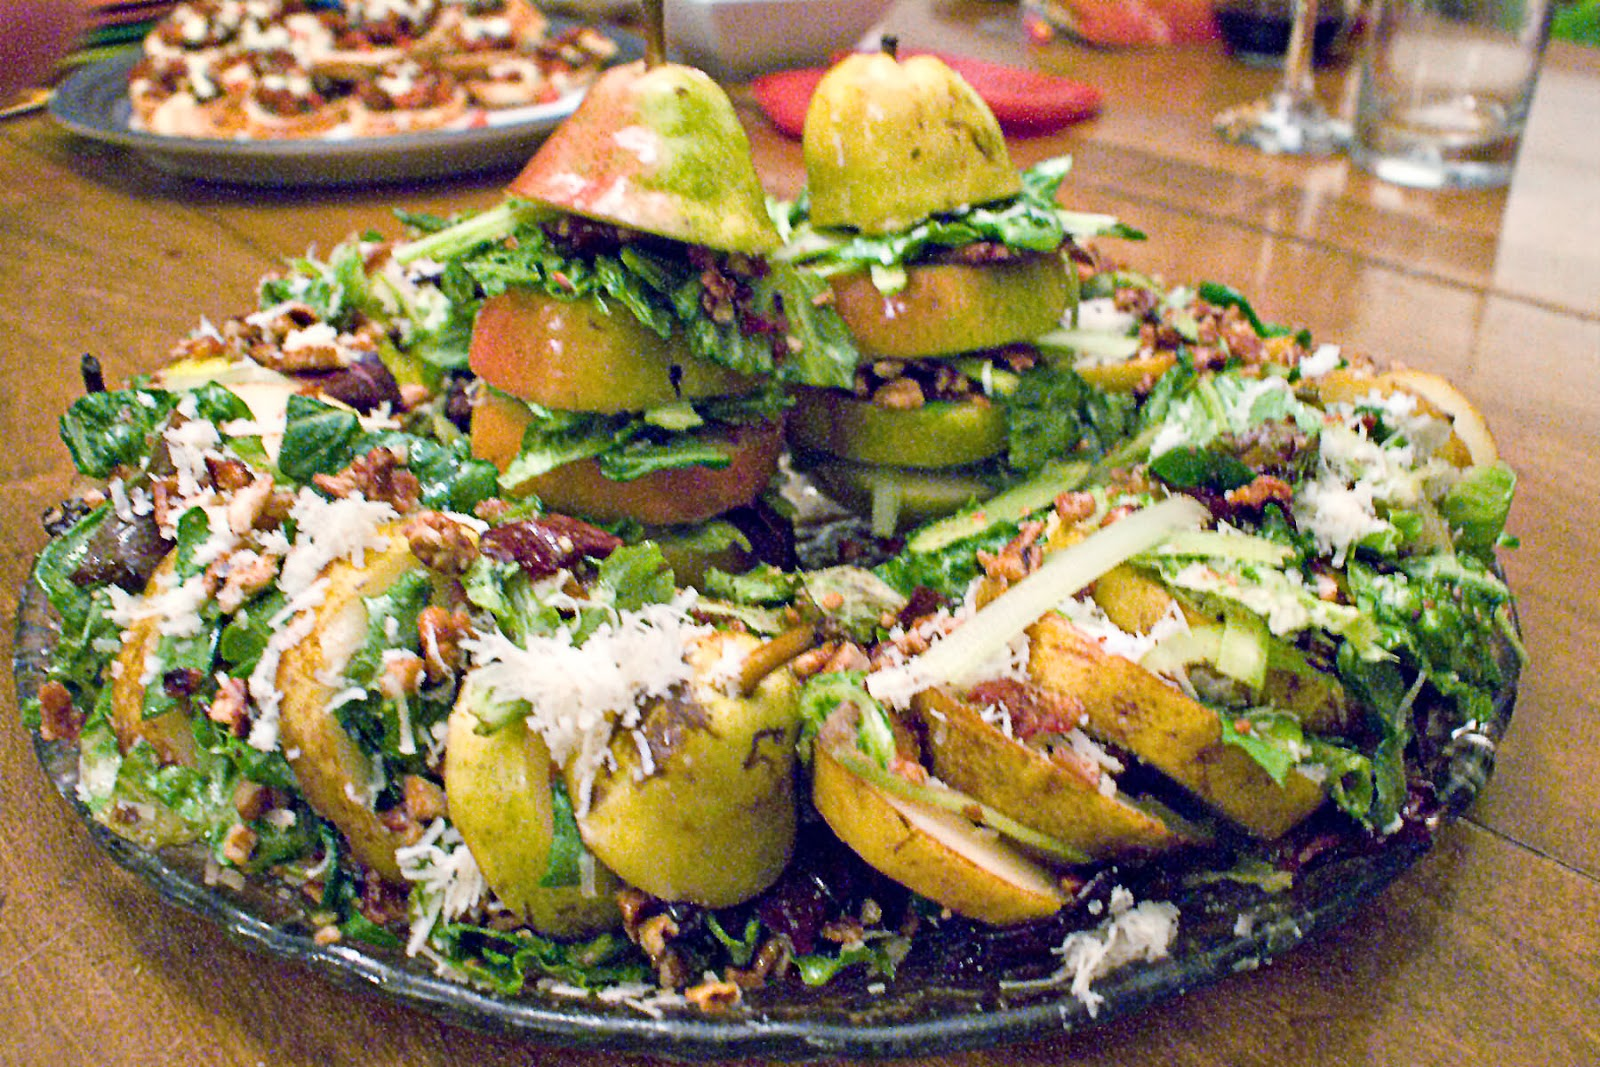 Pear salad with bacon, pecans, baby greens, and manchego cheese